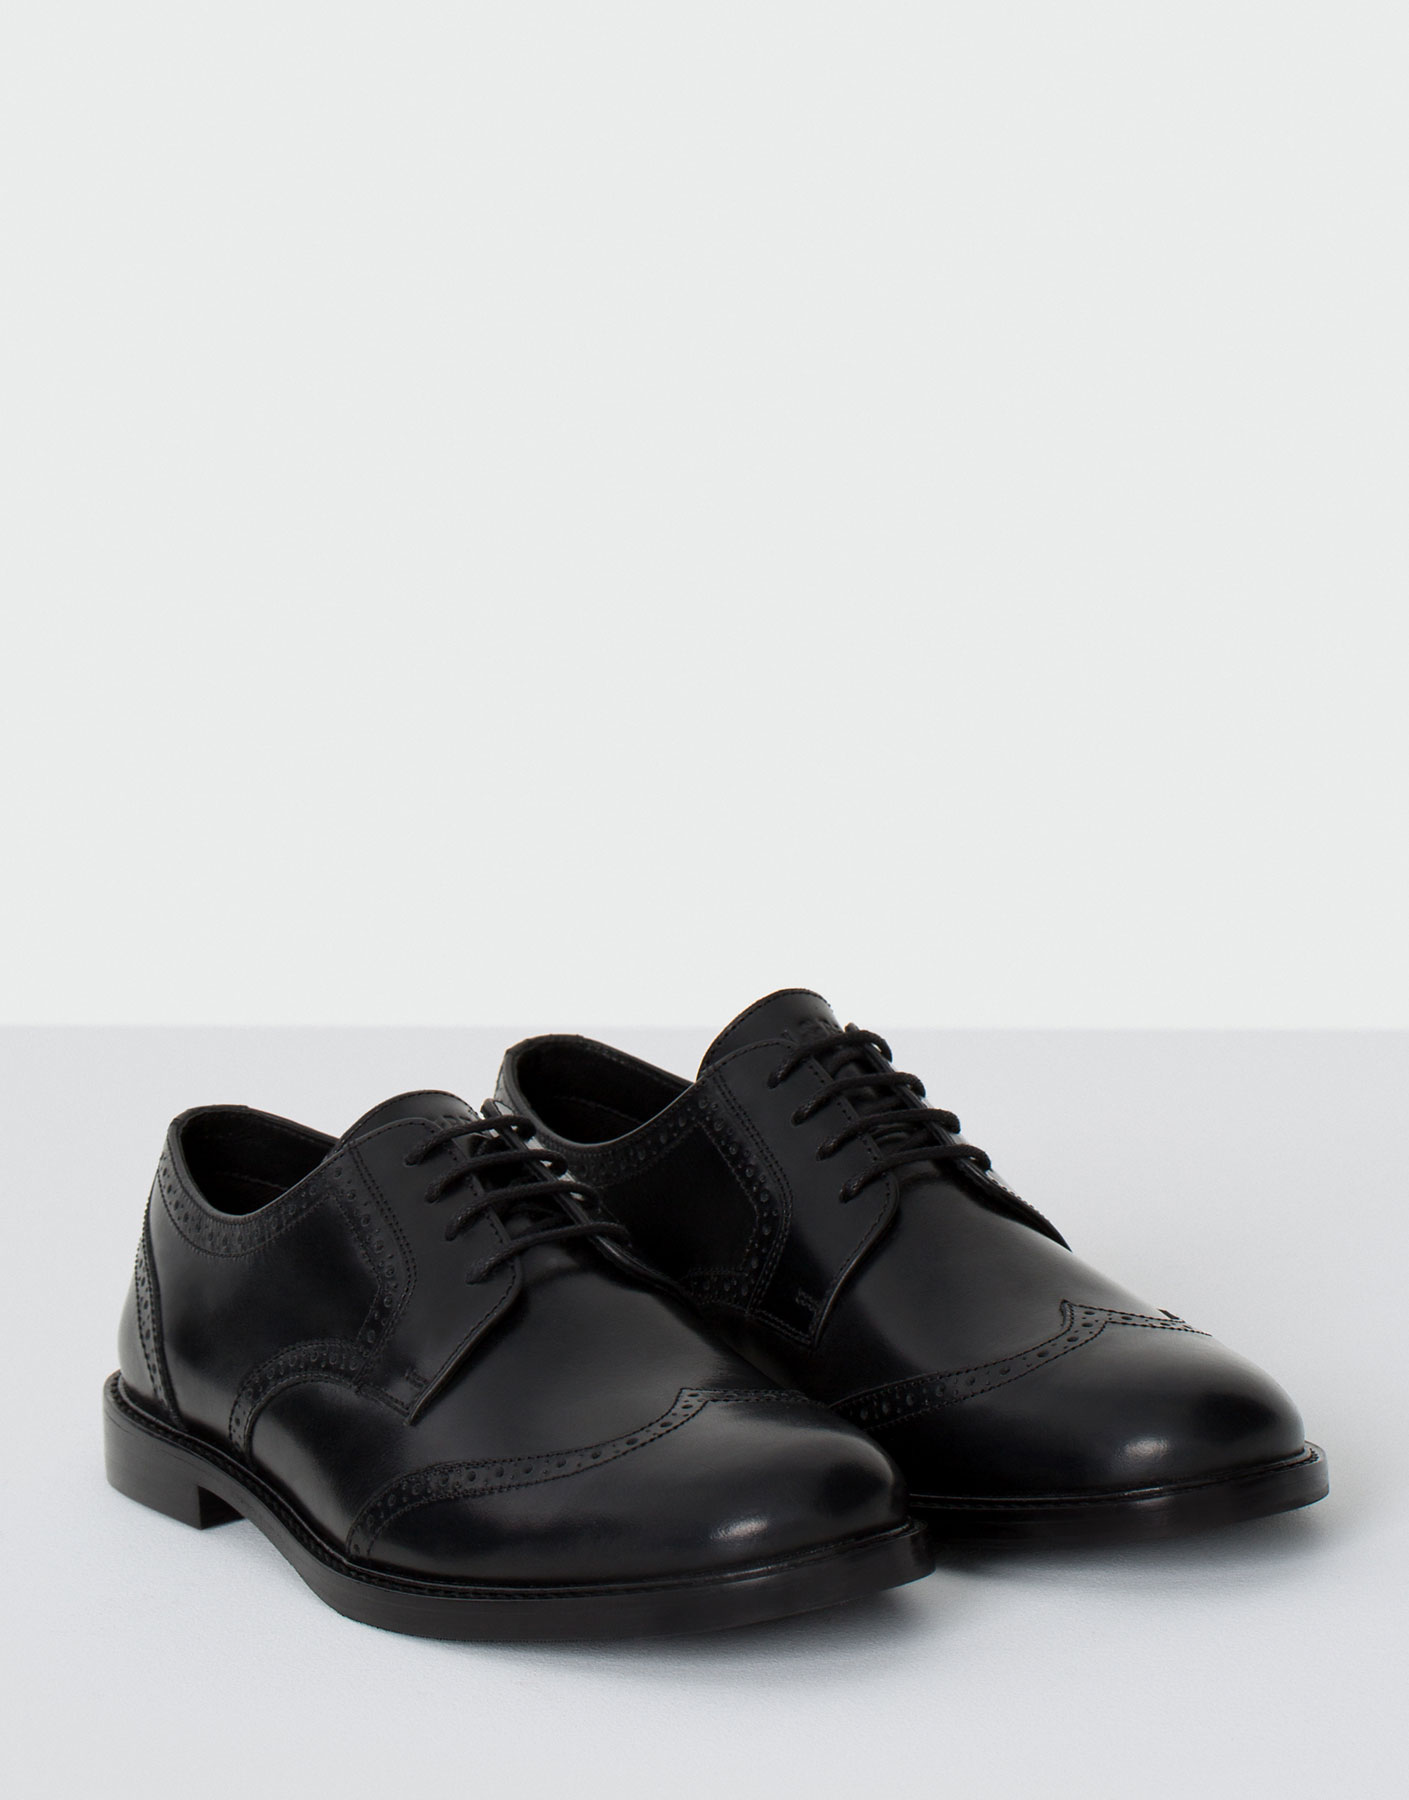 Premium leather shoes